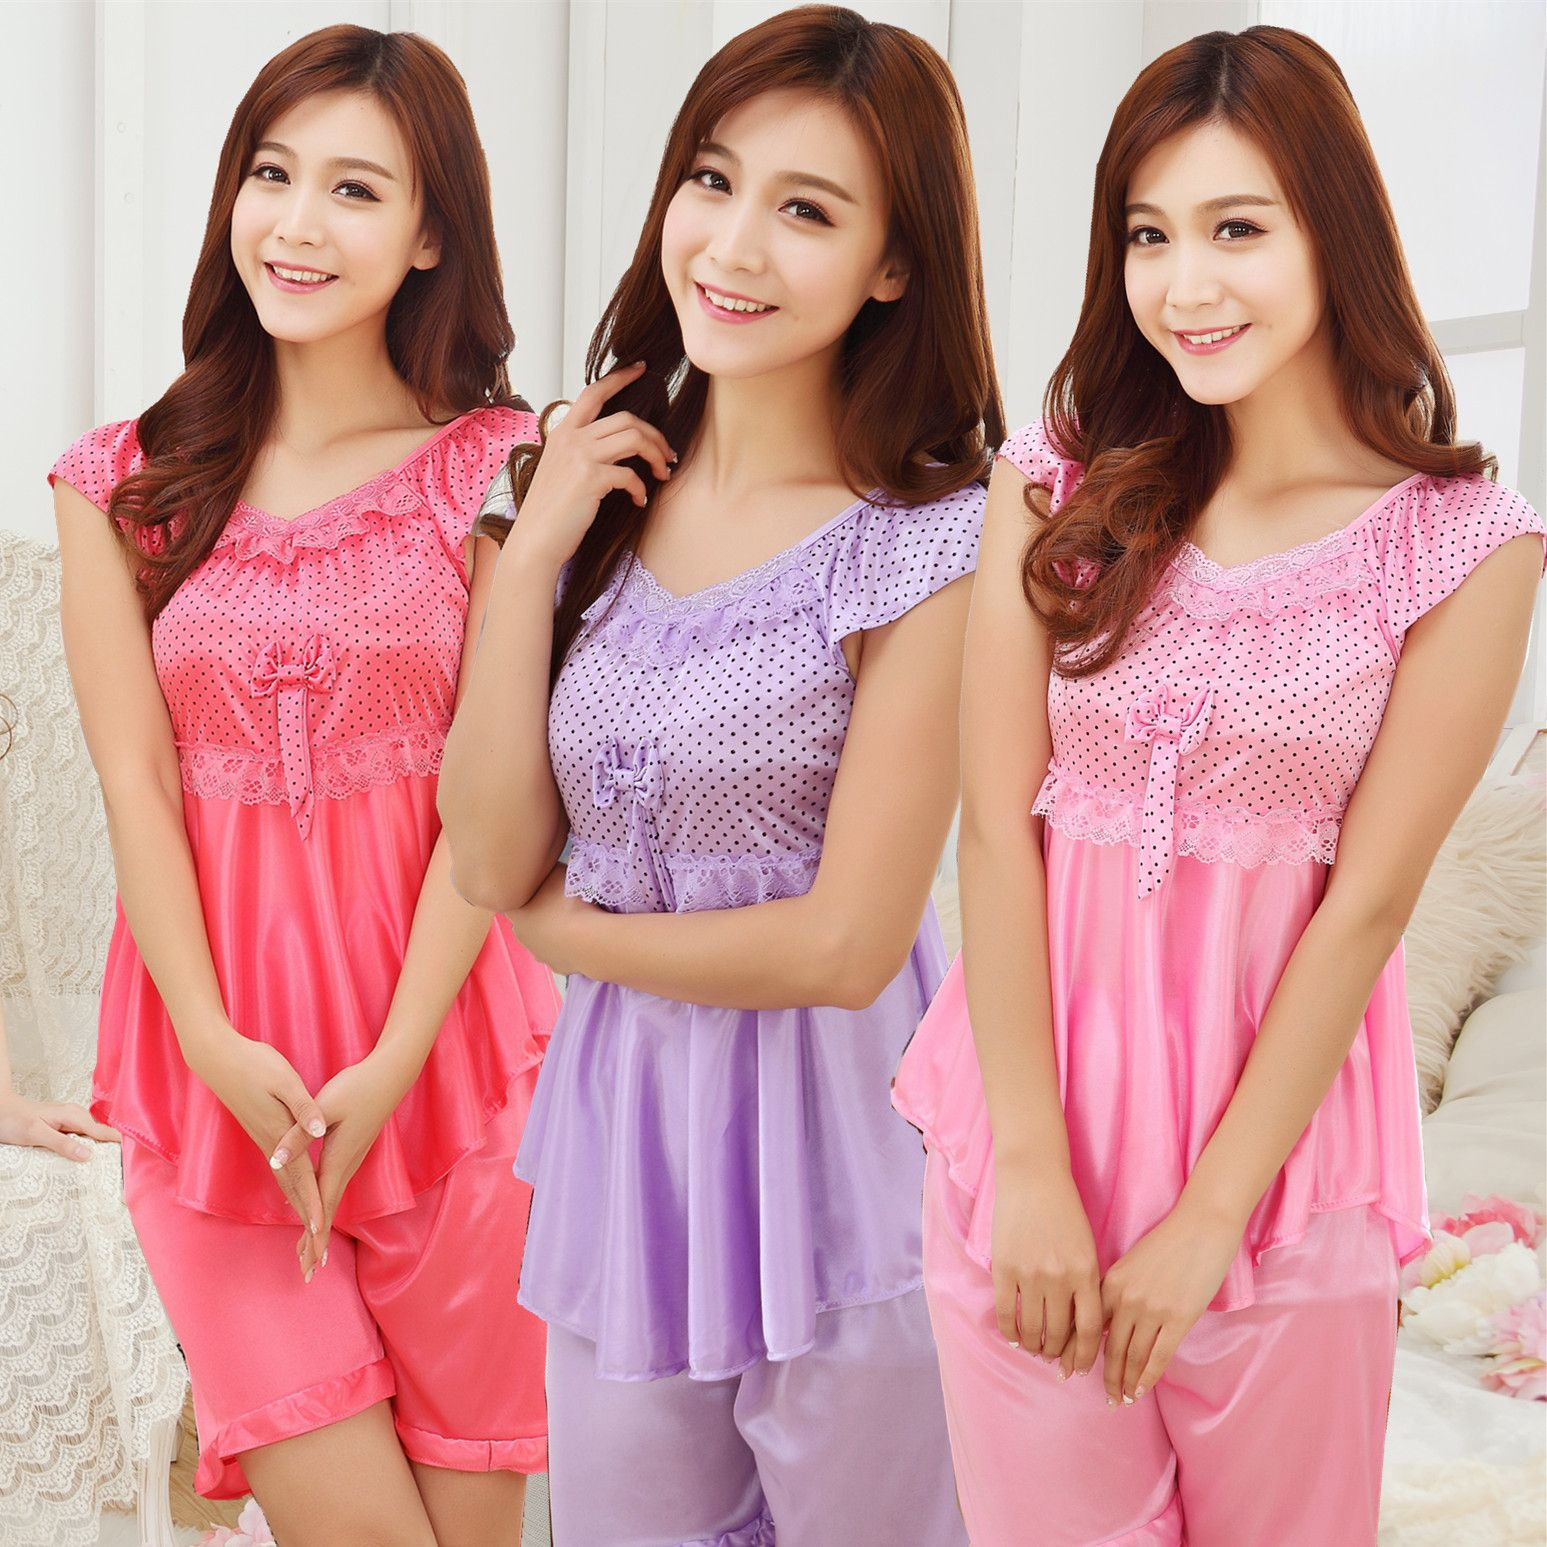 d67e5dd8d53a New Summer Ladies Pyjama Sexy Silk nightgown Short sleeved Lace Nightwear  Rose Pajamas Set Two piece Pijamas mujer Women Set